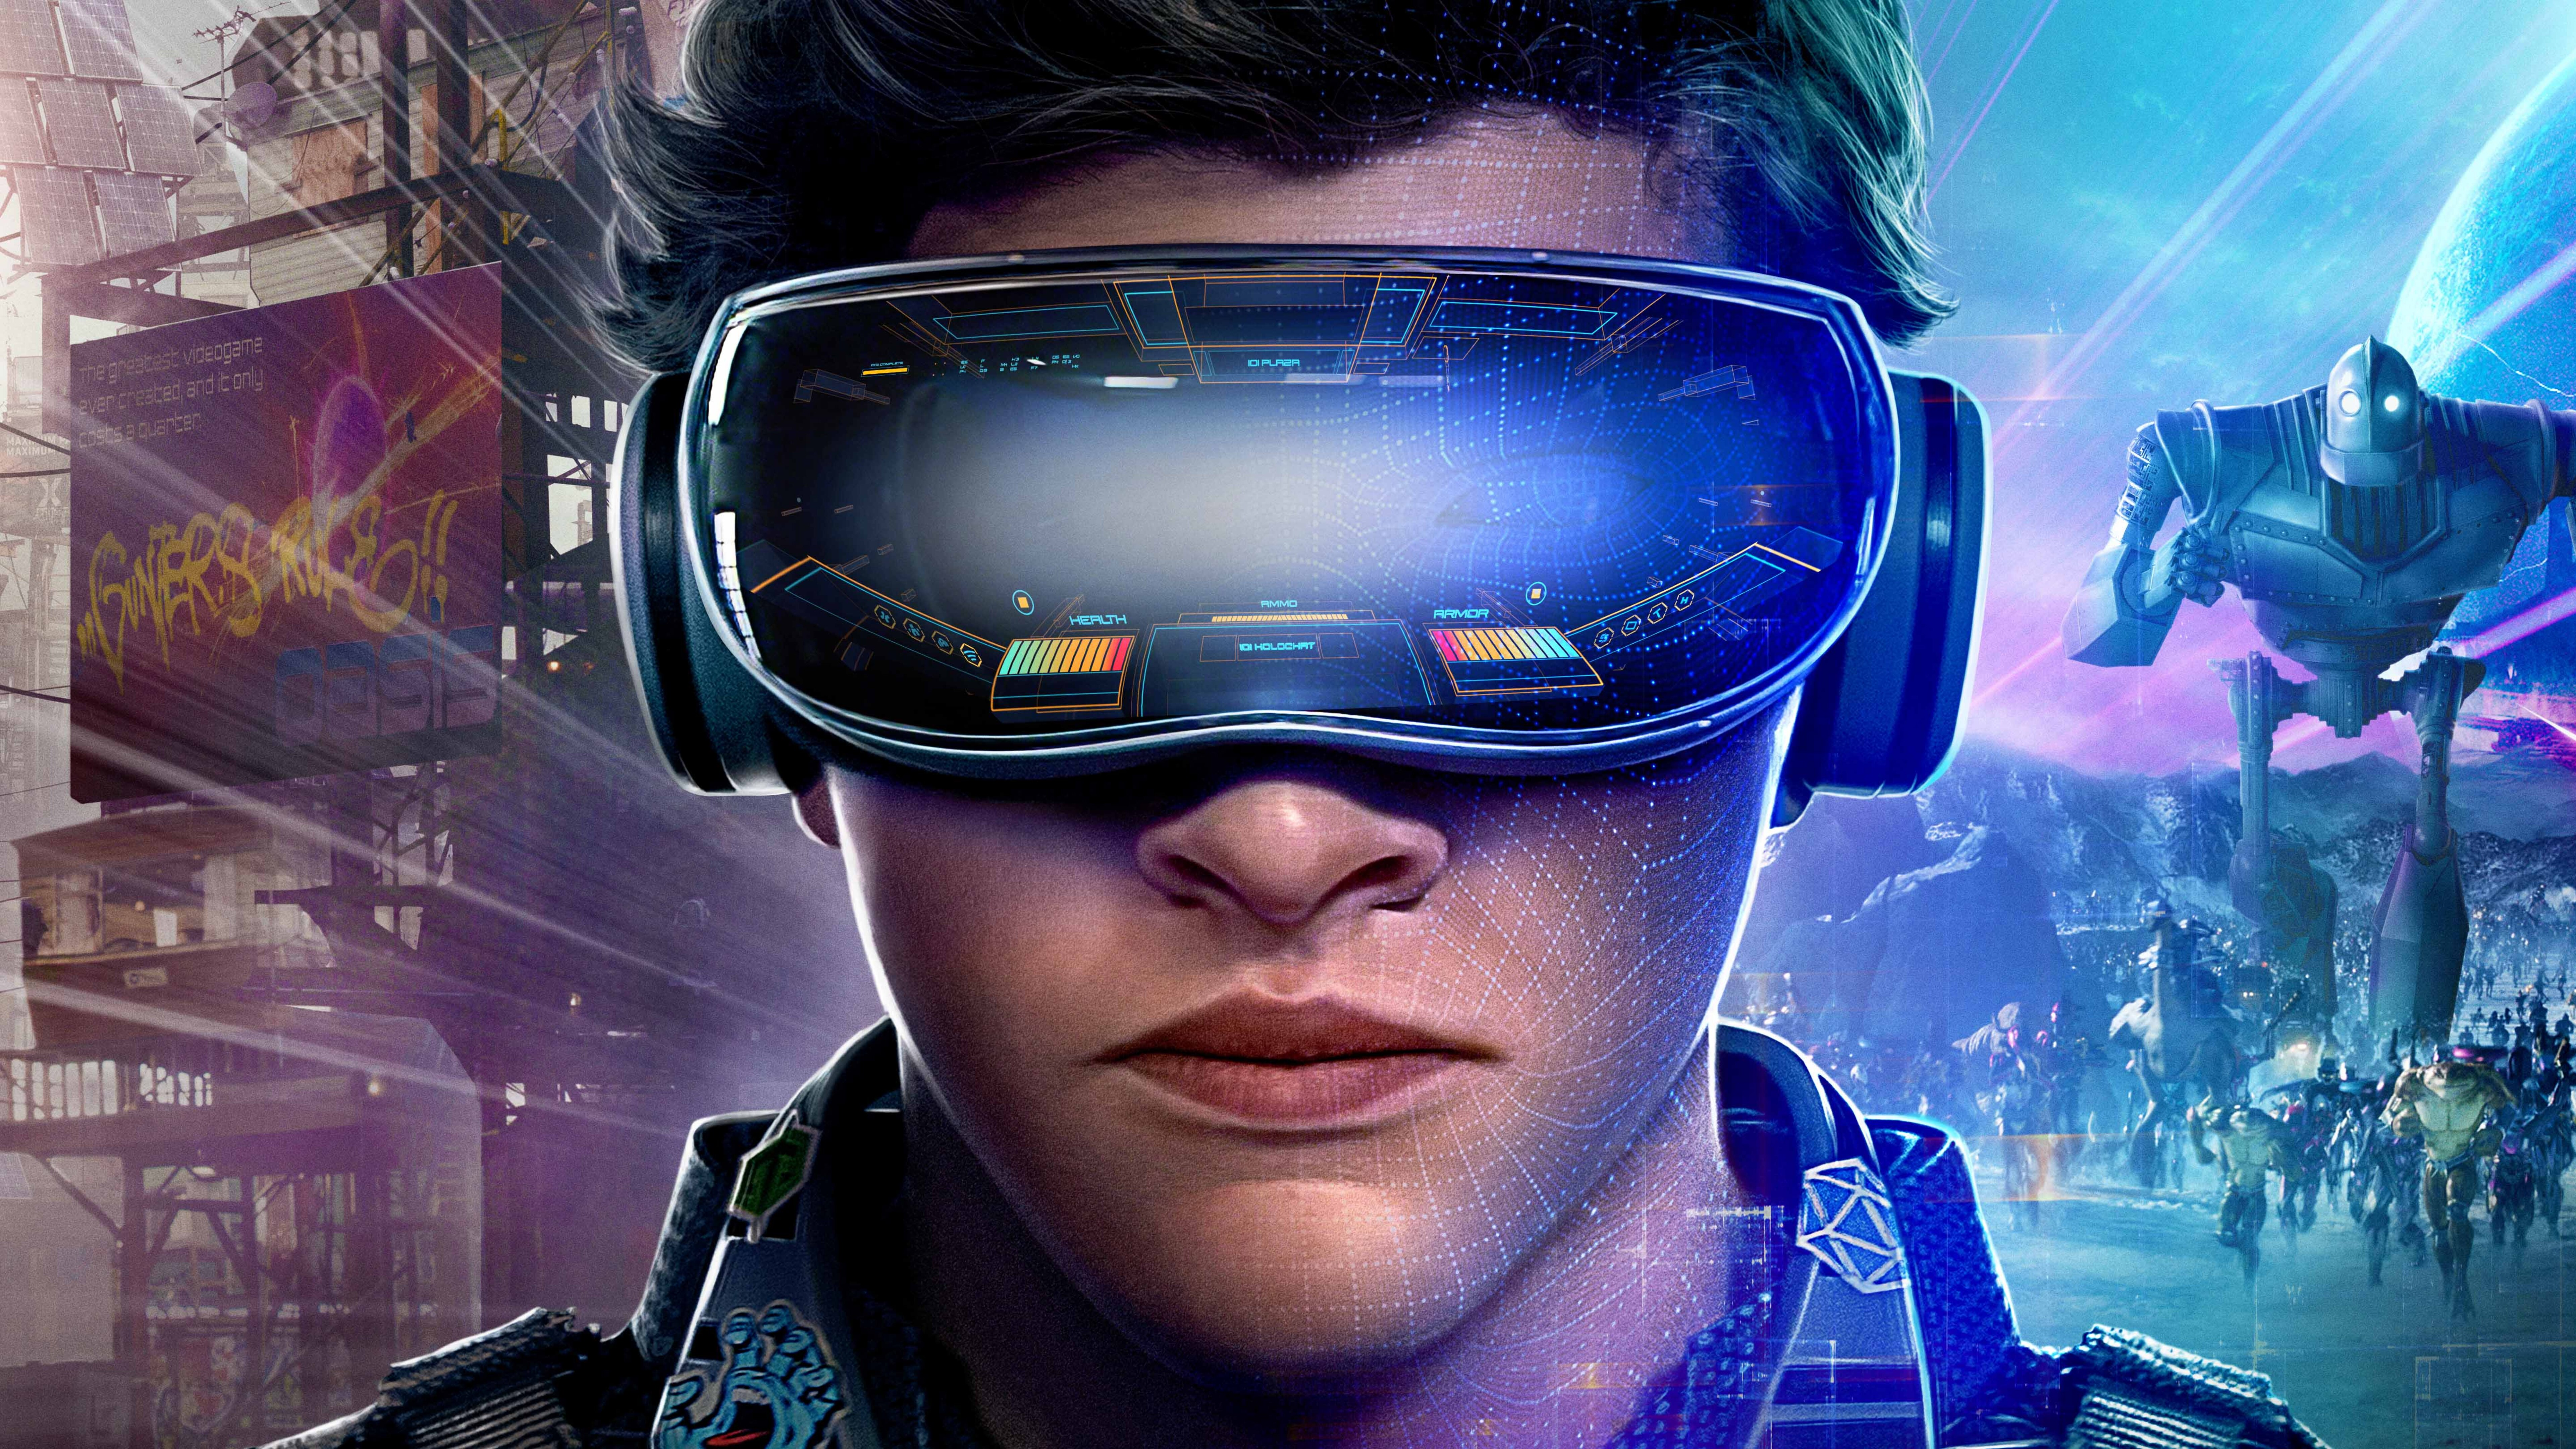 7680x4320 Ready Player One 10k Poster 8k HD 4k Wallpapers, Images